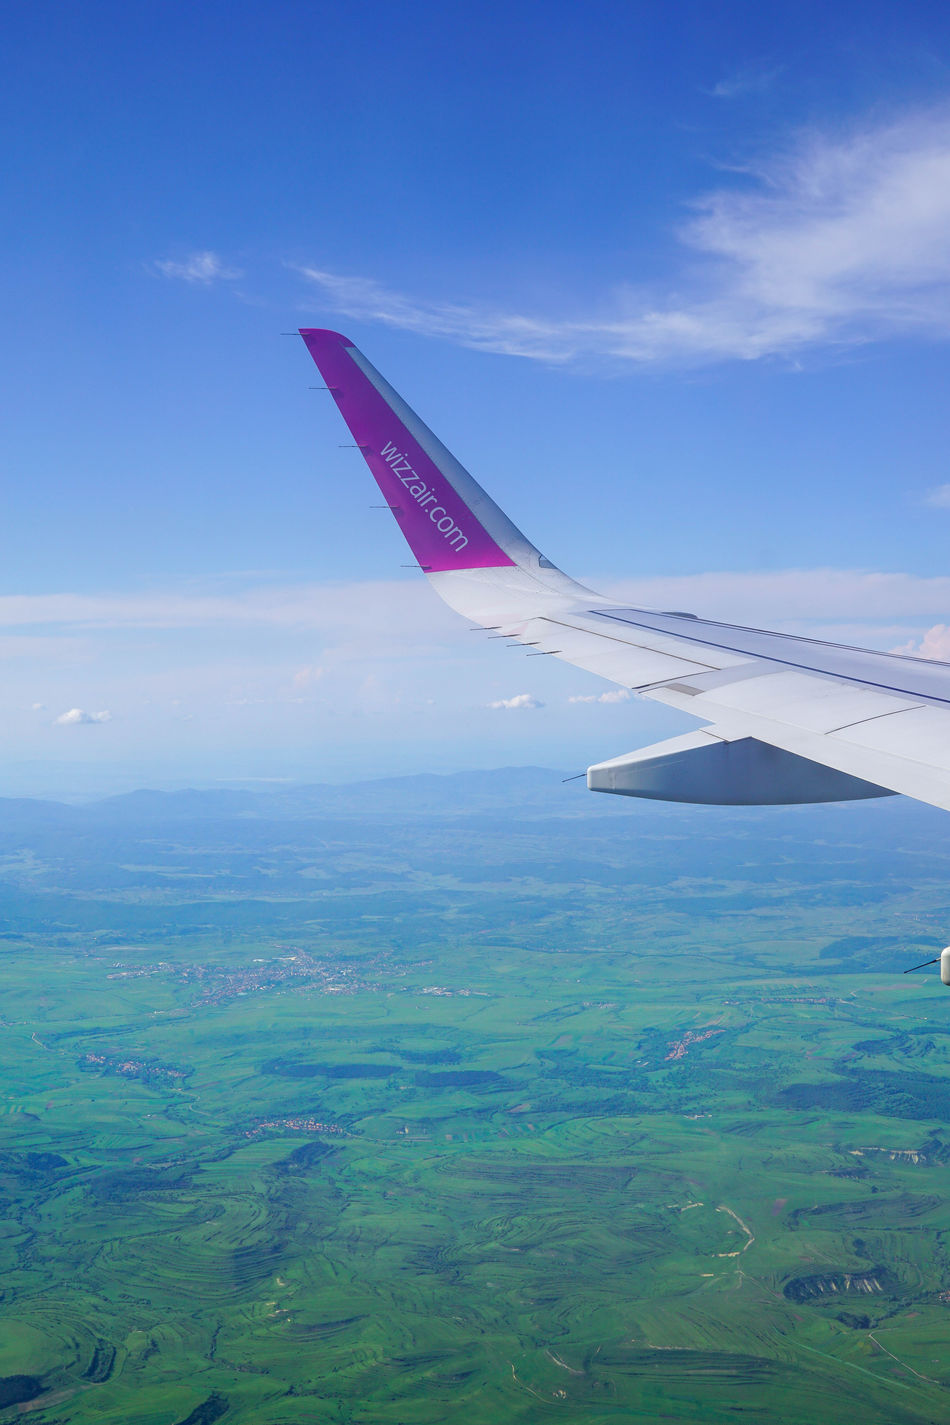 Aerial View Aerospace Industry Air Vehicle Aircraft Wing Airplane Business Finance And Industry Cloud - Sky Commercial Airplane Day Flying Landscape Mid-air Modern Mountain Nature No People Outdoors Sea Sky Transportation Travel Wizz Wizzair